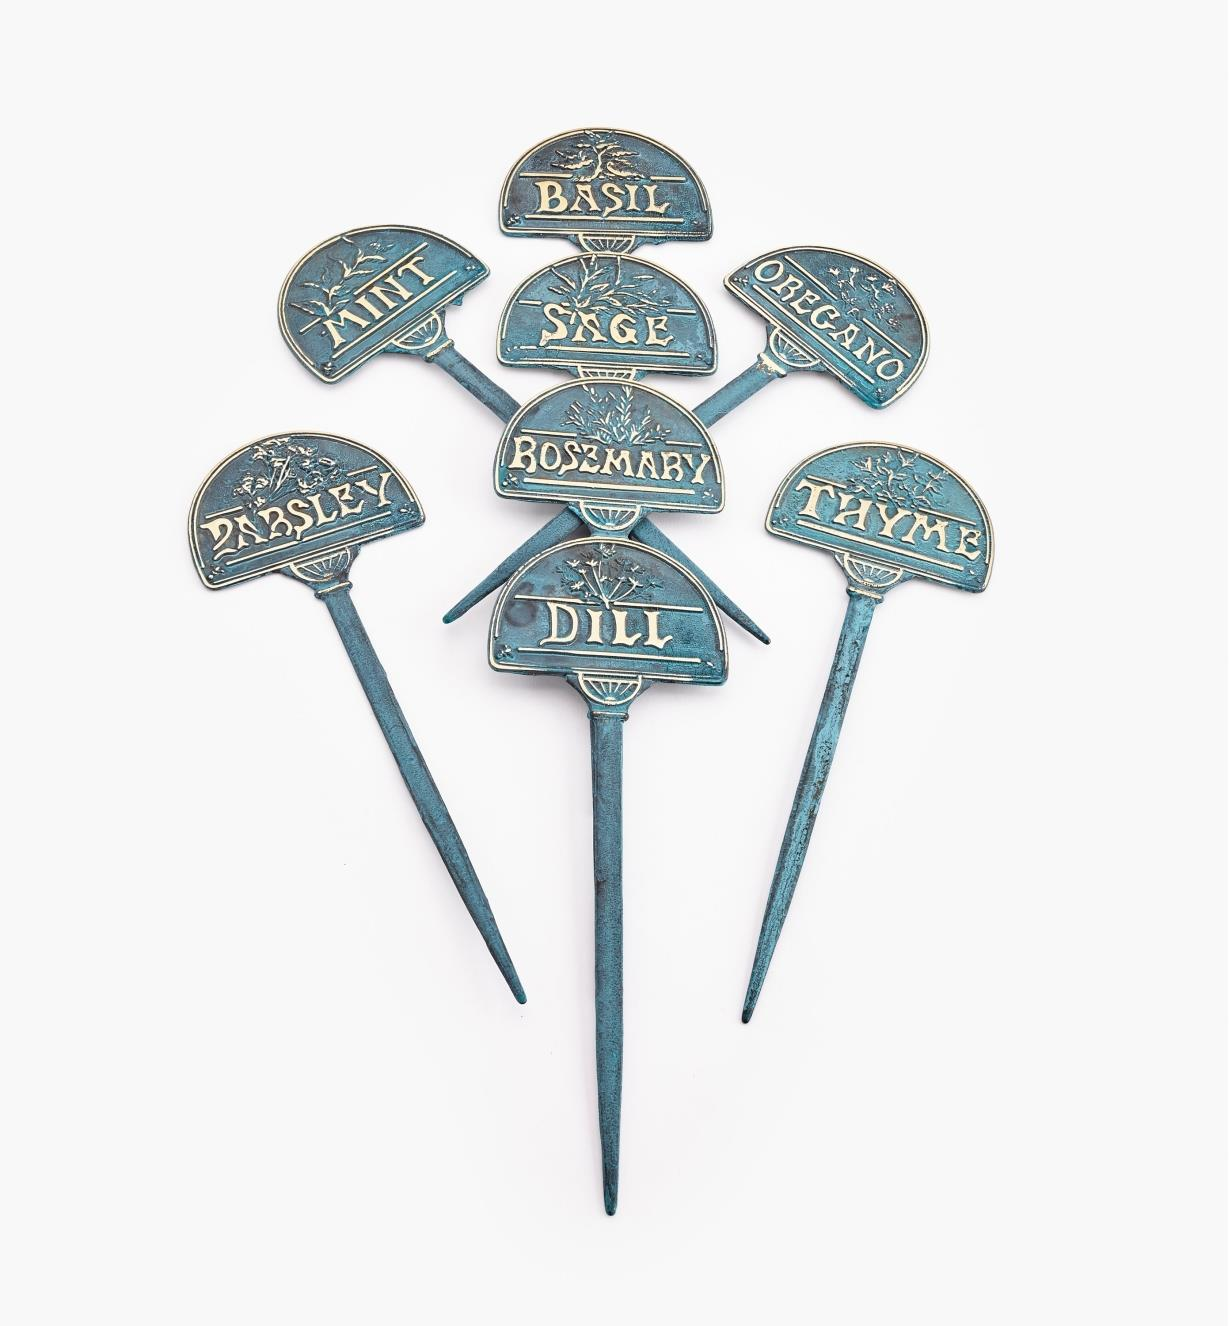 EA320 - Brass Herb Markers, set of 8